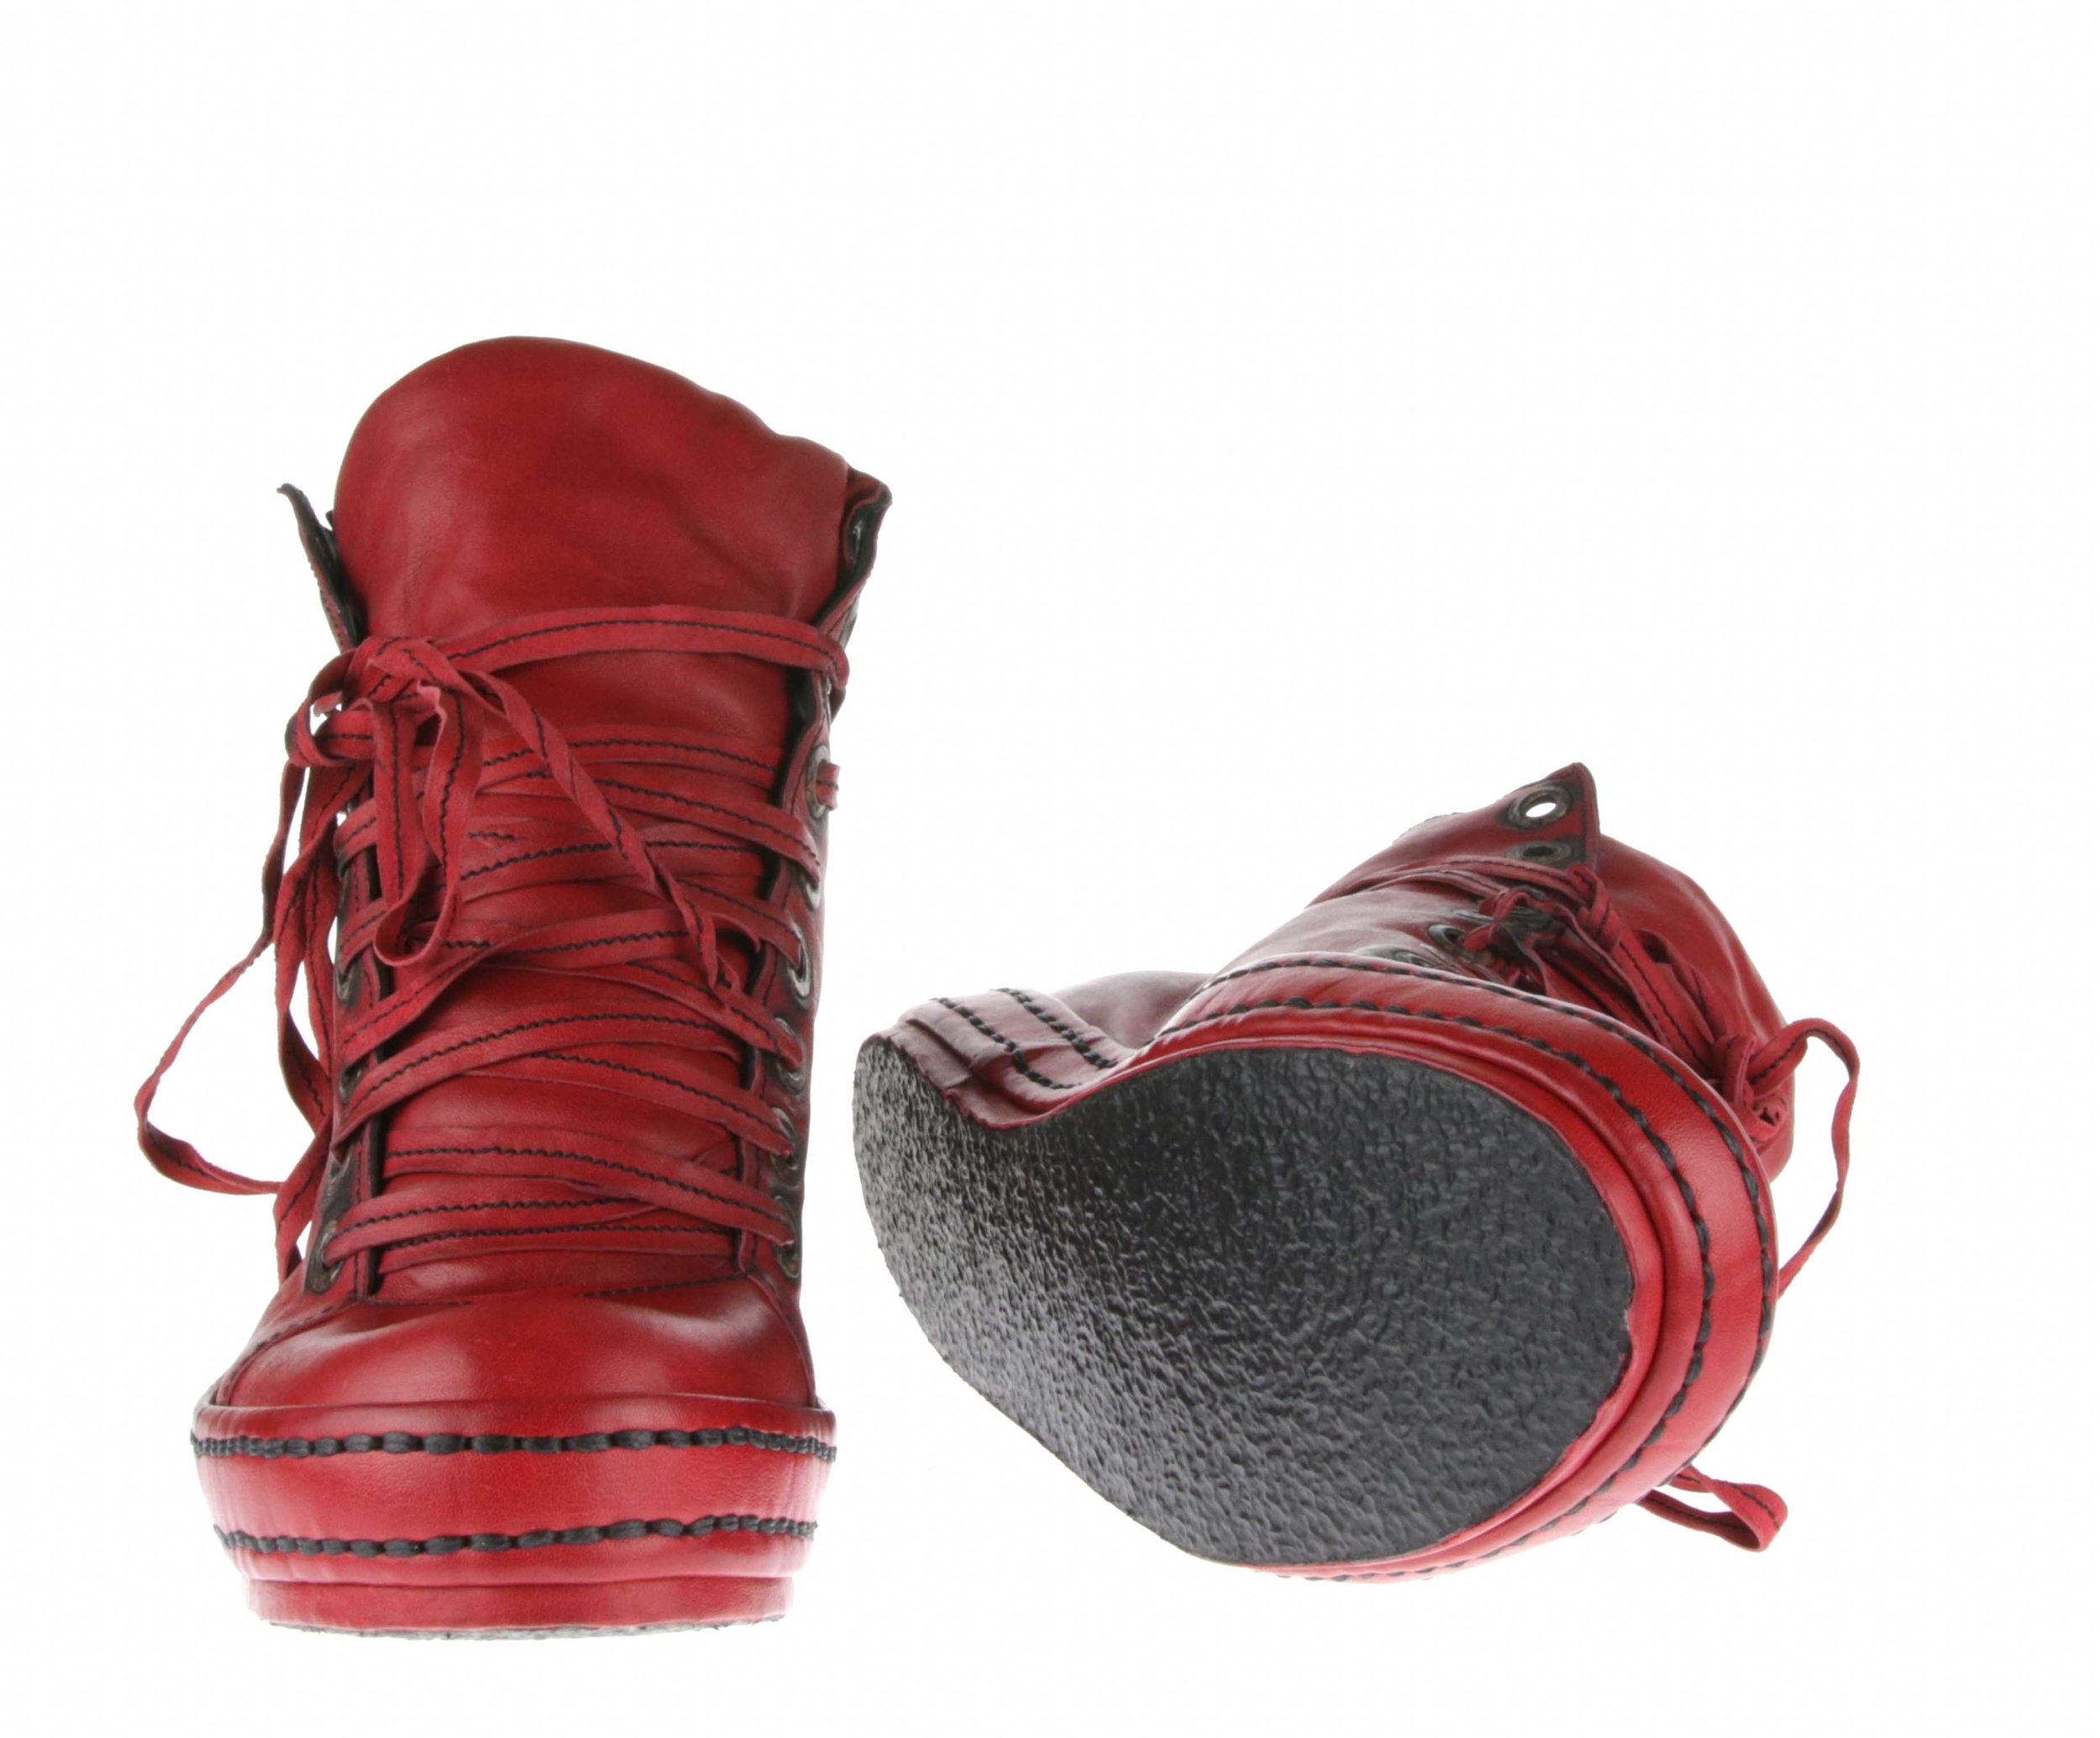 9Hole LBs Red Roo Front Insole.jpg